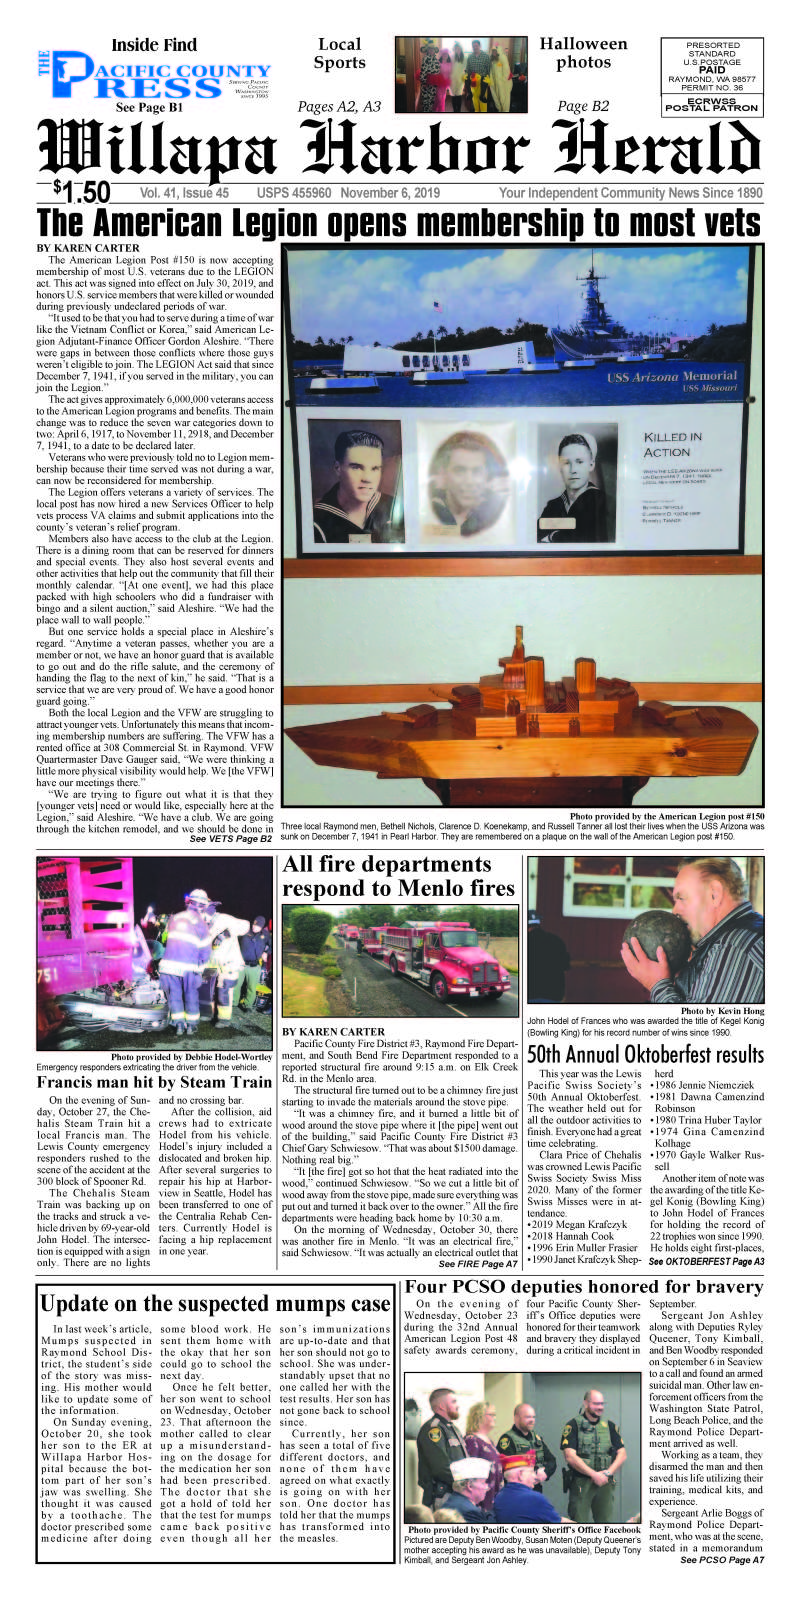 November 6, 2019 Willapa Harbor Herald and Pacific County Press